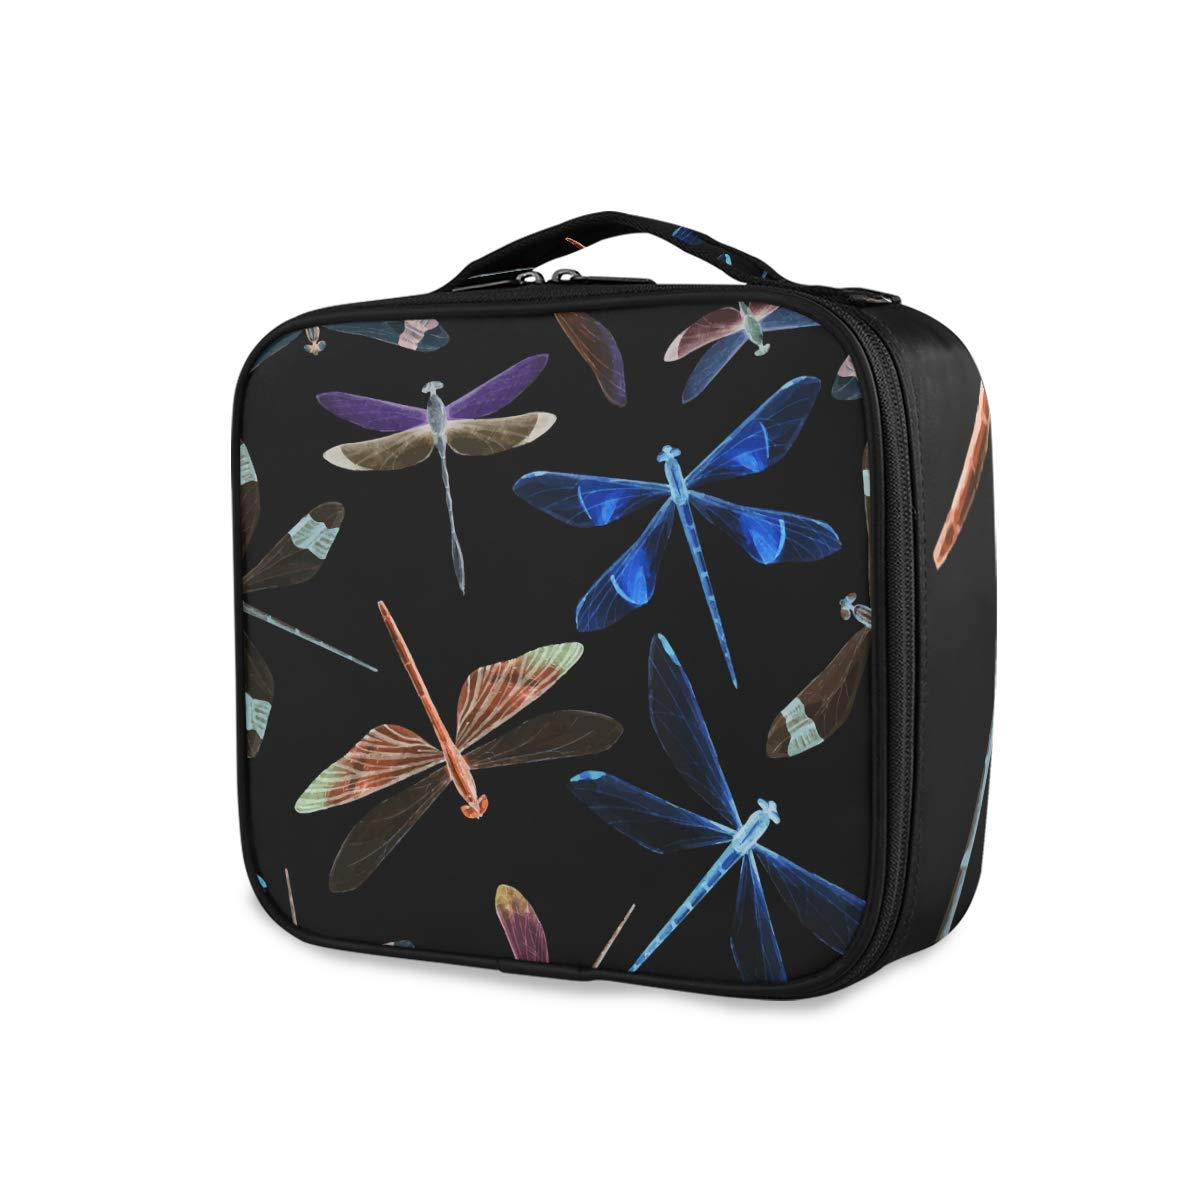 Travel Makeup Case Watercolor Cosmetic New mail order 2021new shipping free Bag Tra Dragonfly